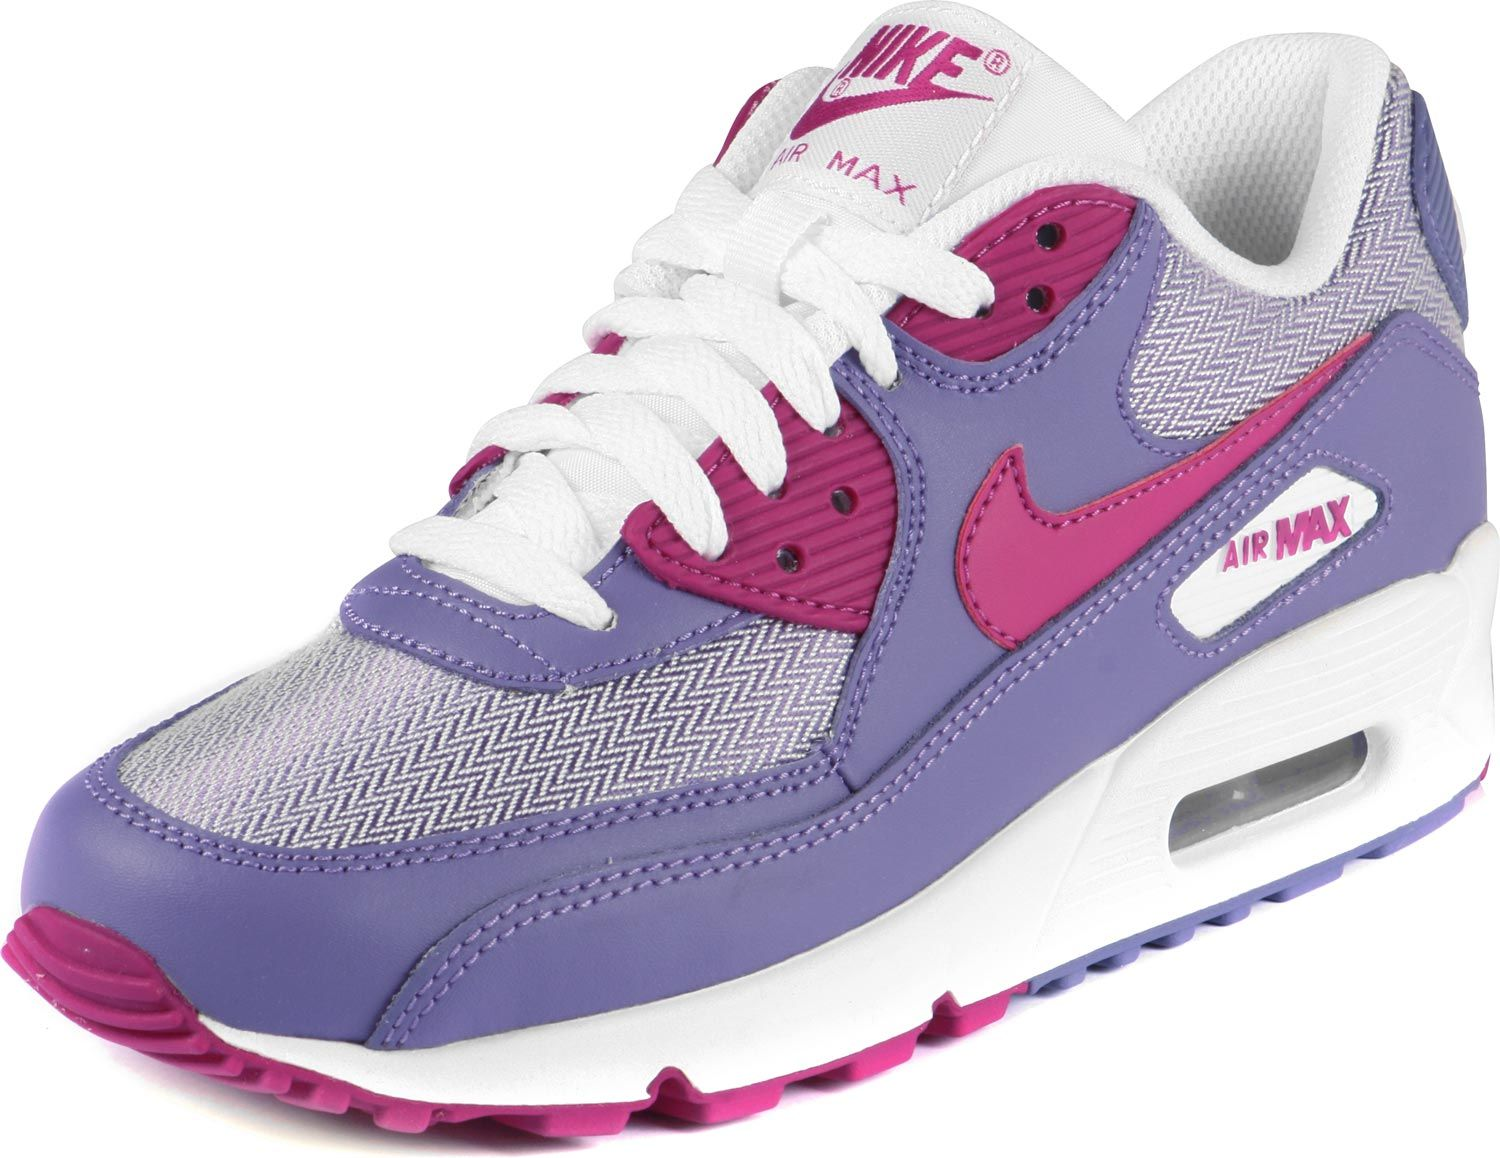 Pink Nike Air Max 90   nike our topseller from nike   airmax   Nike ... 93164a7aec